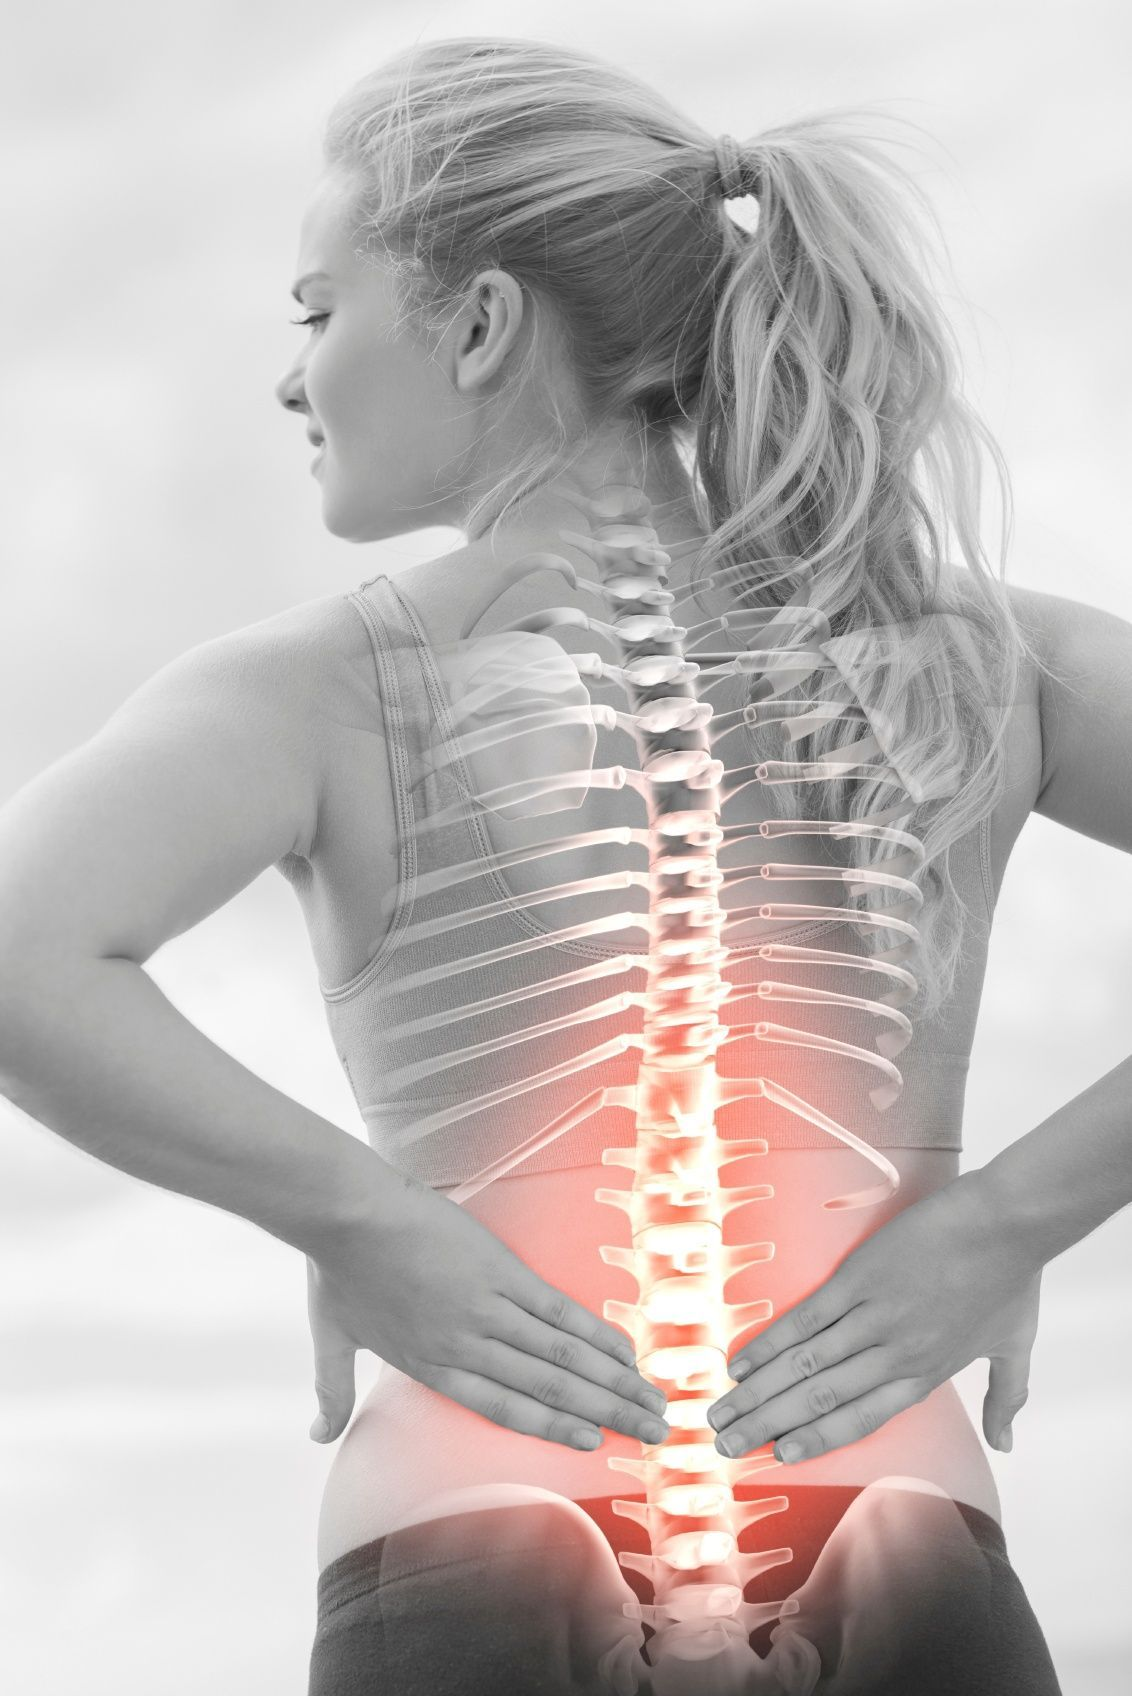 Chiropractic Care for Spine Health